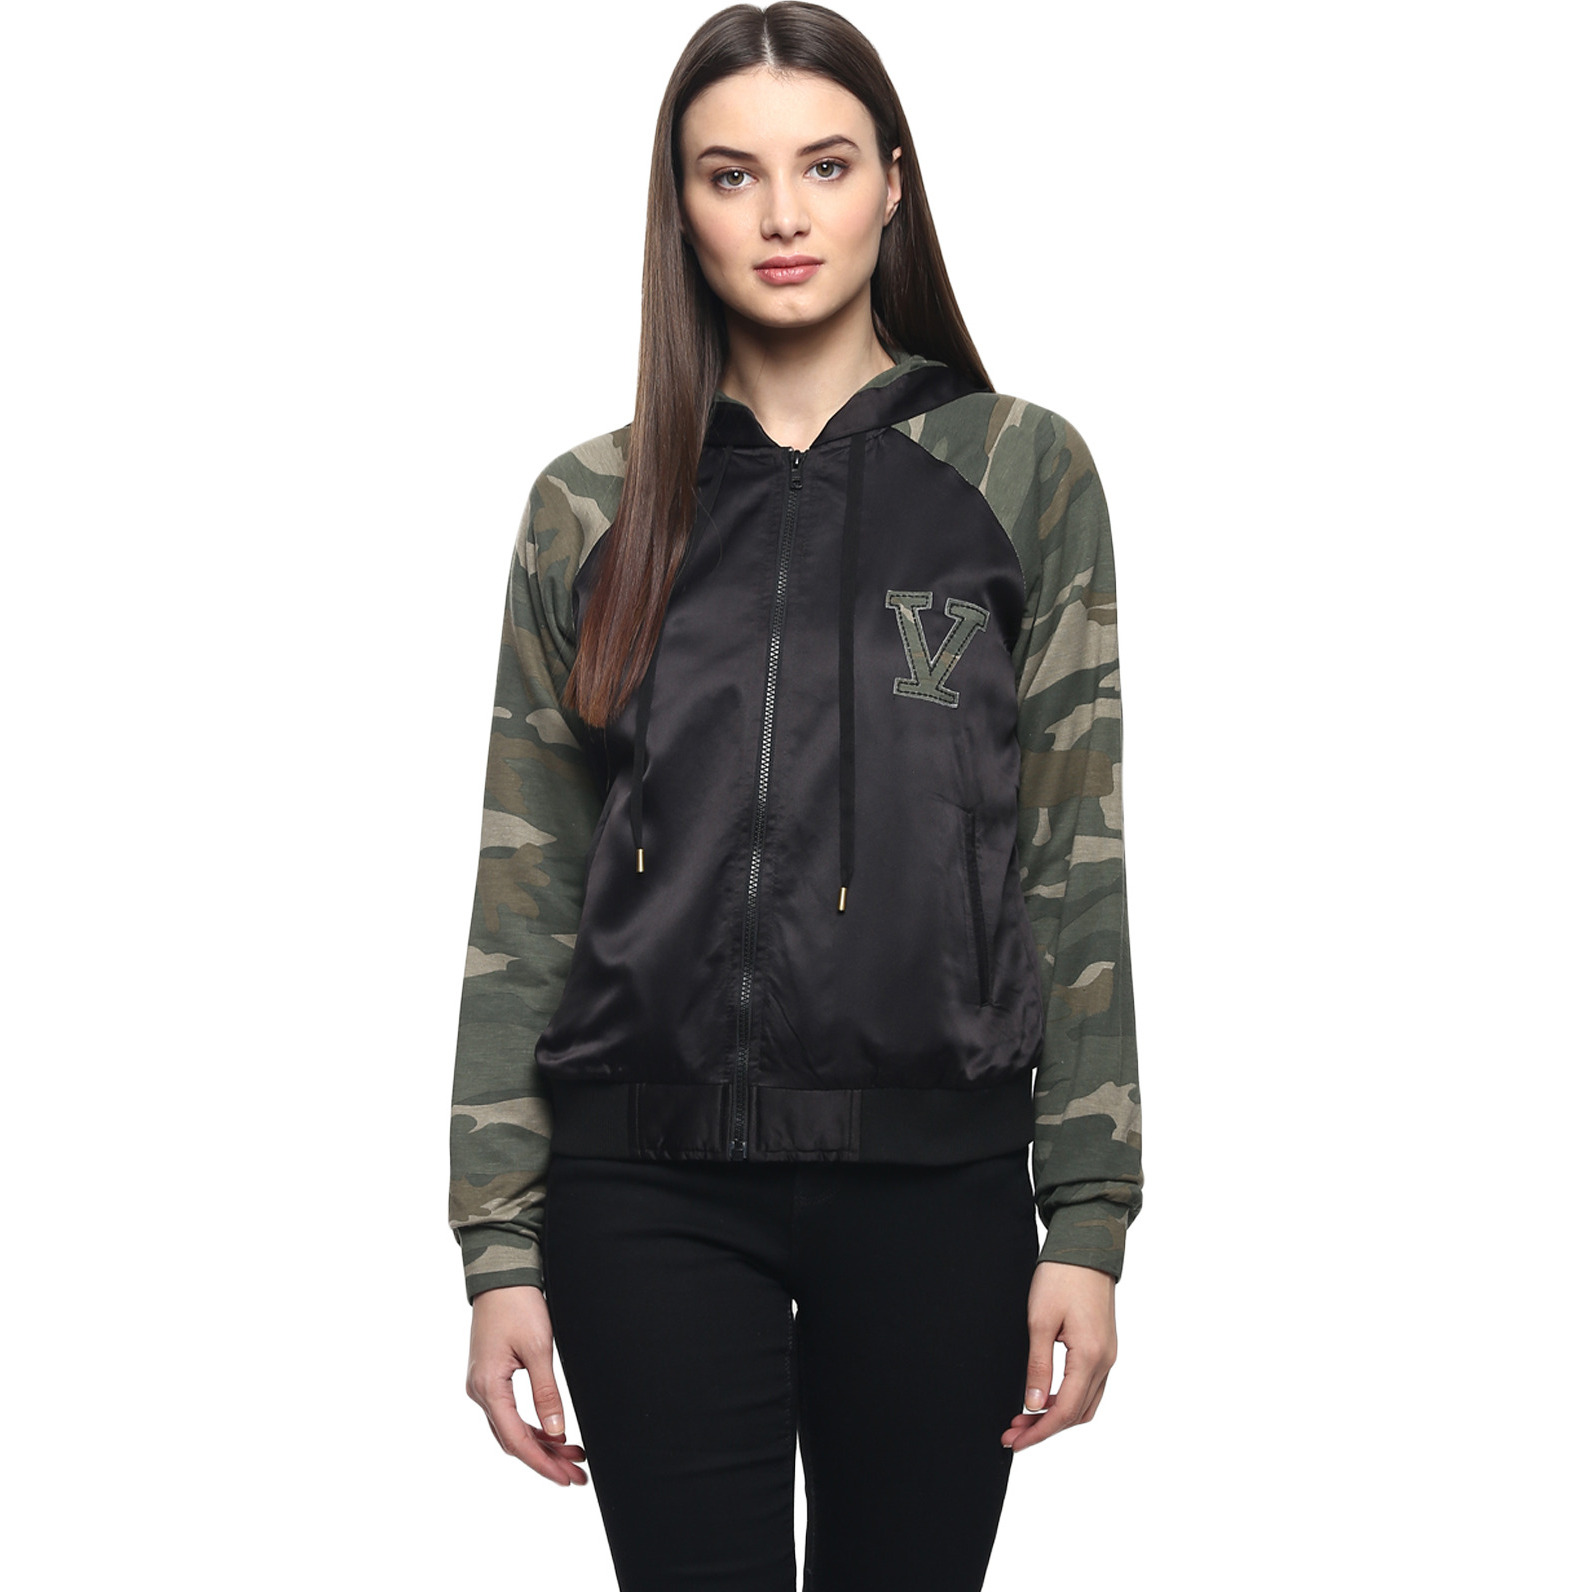 Black Bomber Jacket With Camoflage Sleeves And Hood